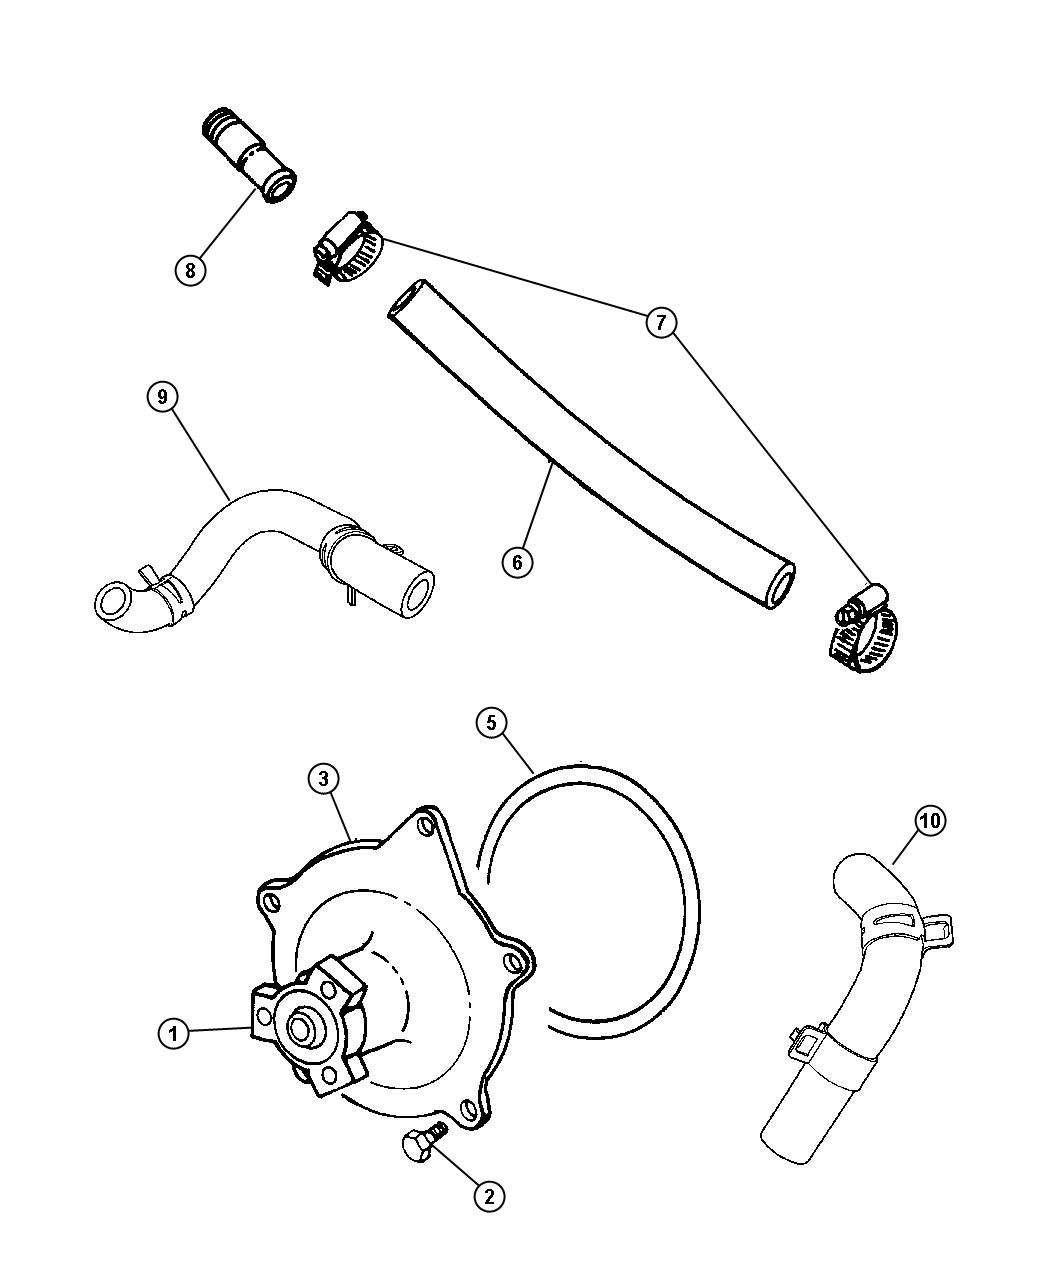 2000 chrysler grand voyager water pump and related parts